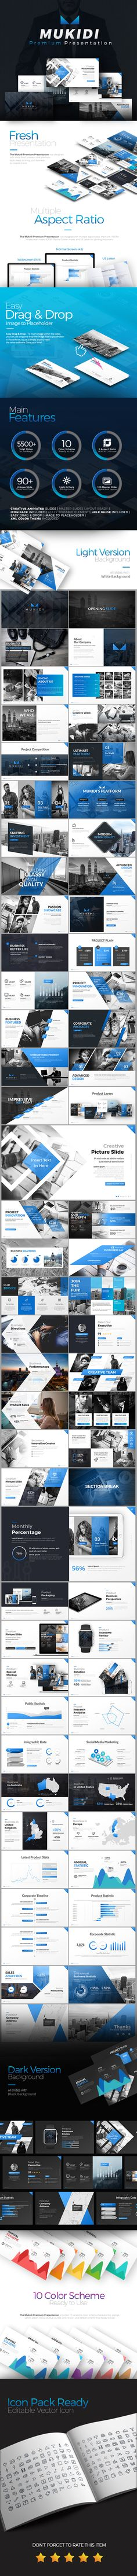 creative business powerpoint presentation template | creative, Presentation templates